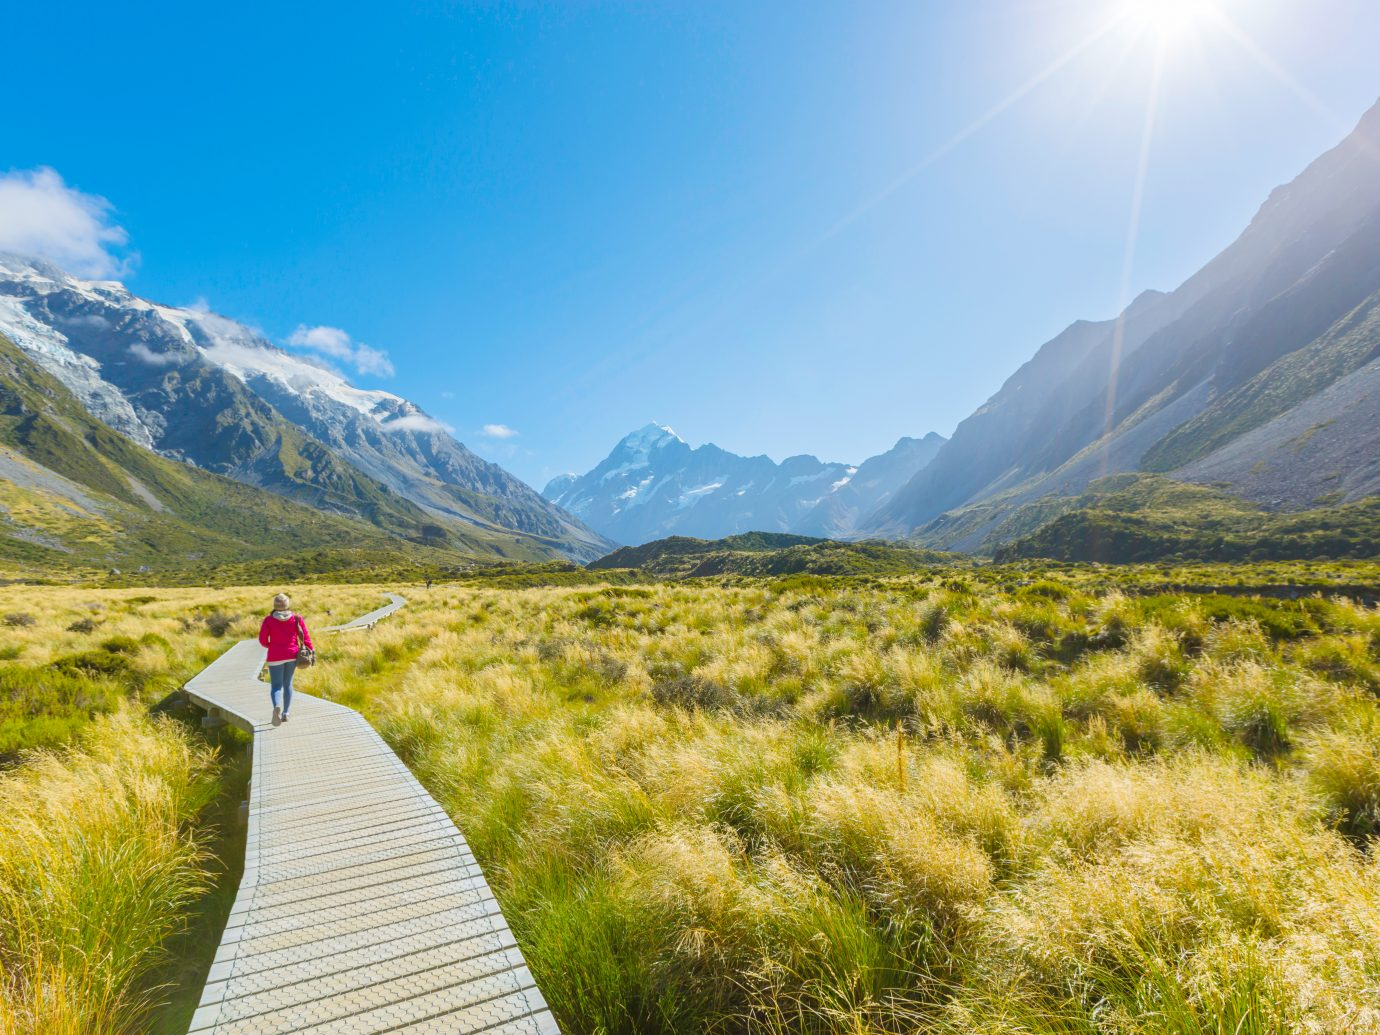 mount cook national park in south Island New Zealand